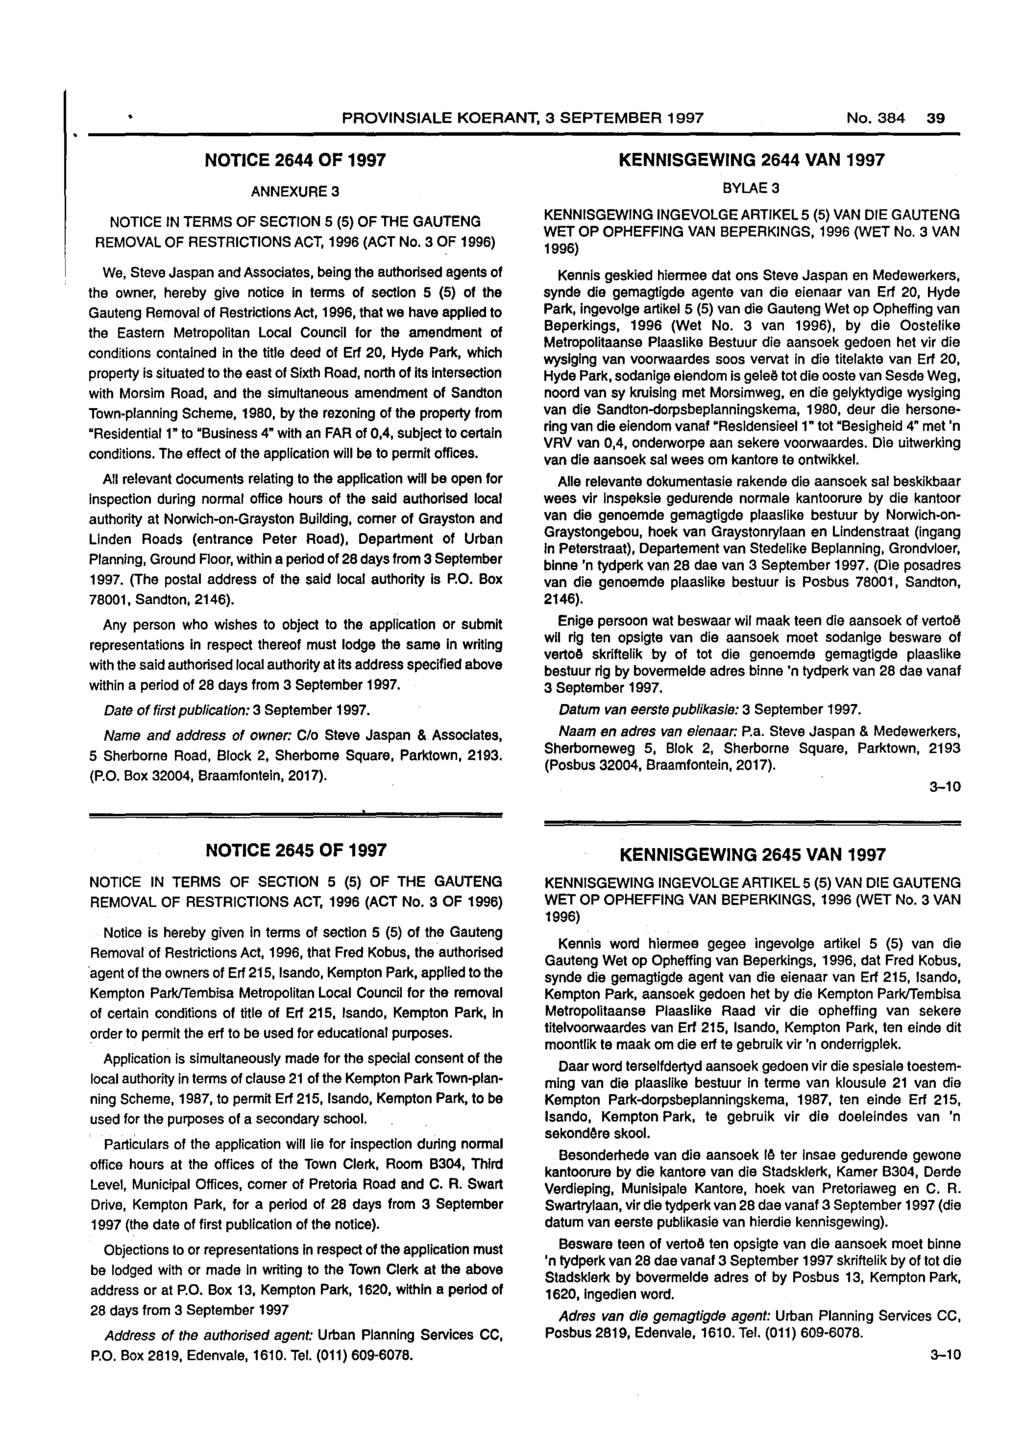 PROVINSIALE KOERANT, 3 SEPTEMBER 1997 No. 39 NOTICE 2644 OF 1997 ANNEXURE 3 NOTICE IN TERMS OF SECTION 5 (5) OF THE GAUTENG REMOVAL OF RESTRICTIONS ACT, 1996 (ACT No.